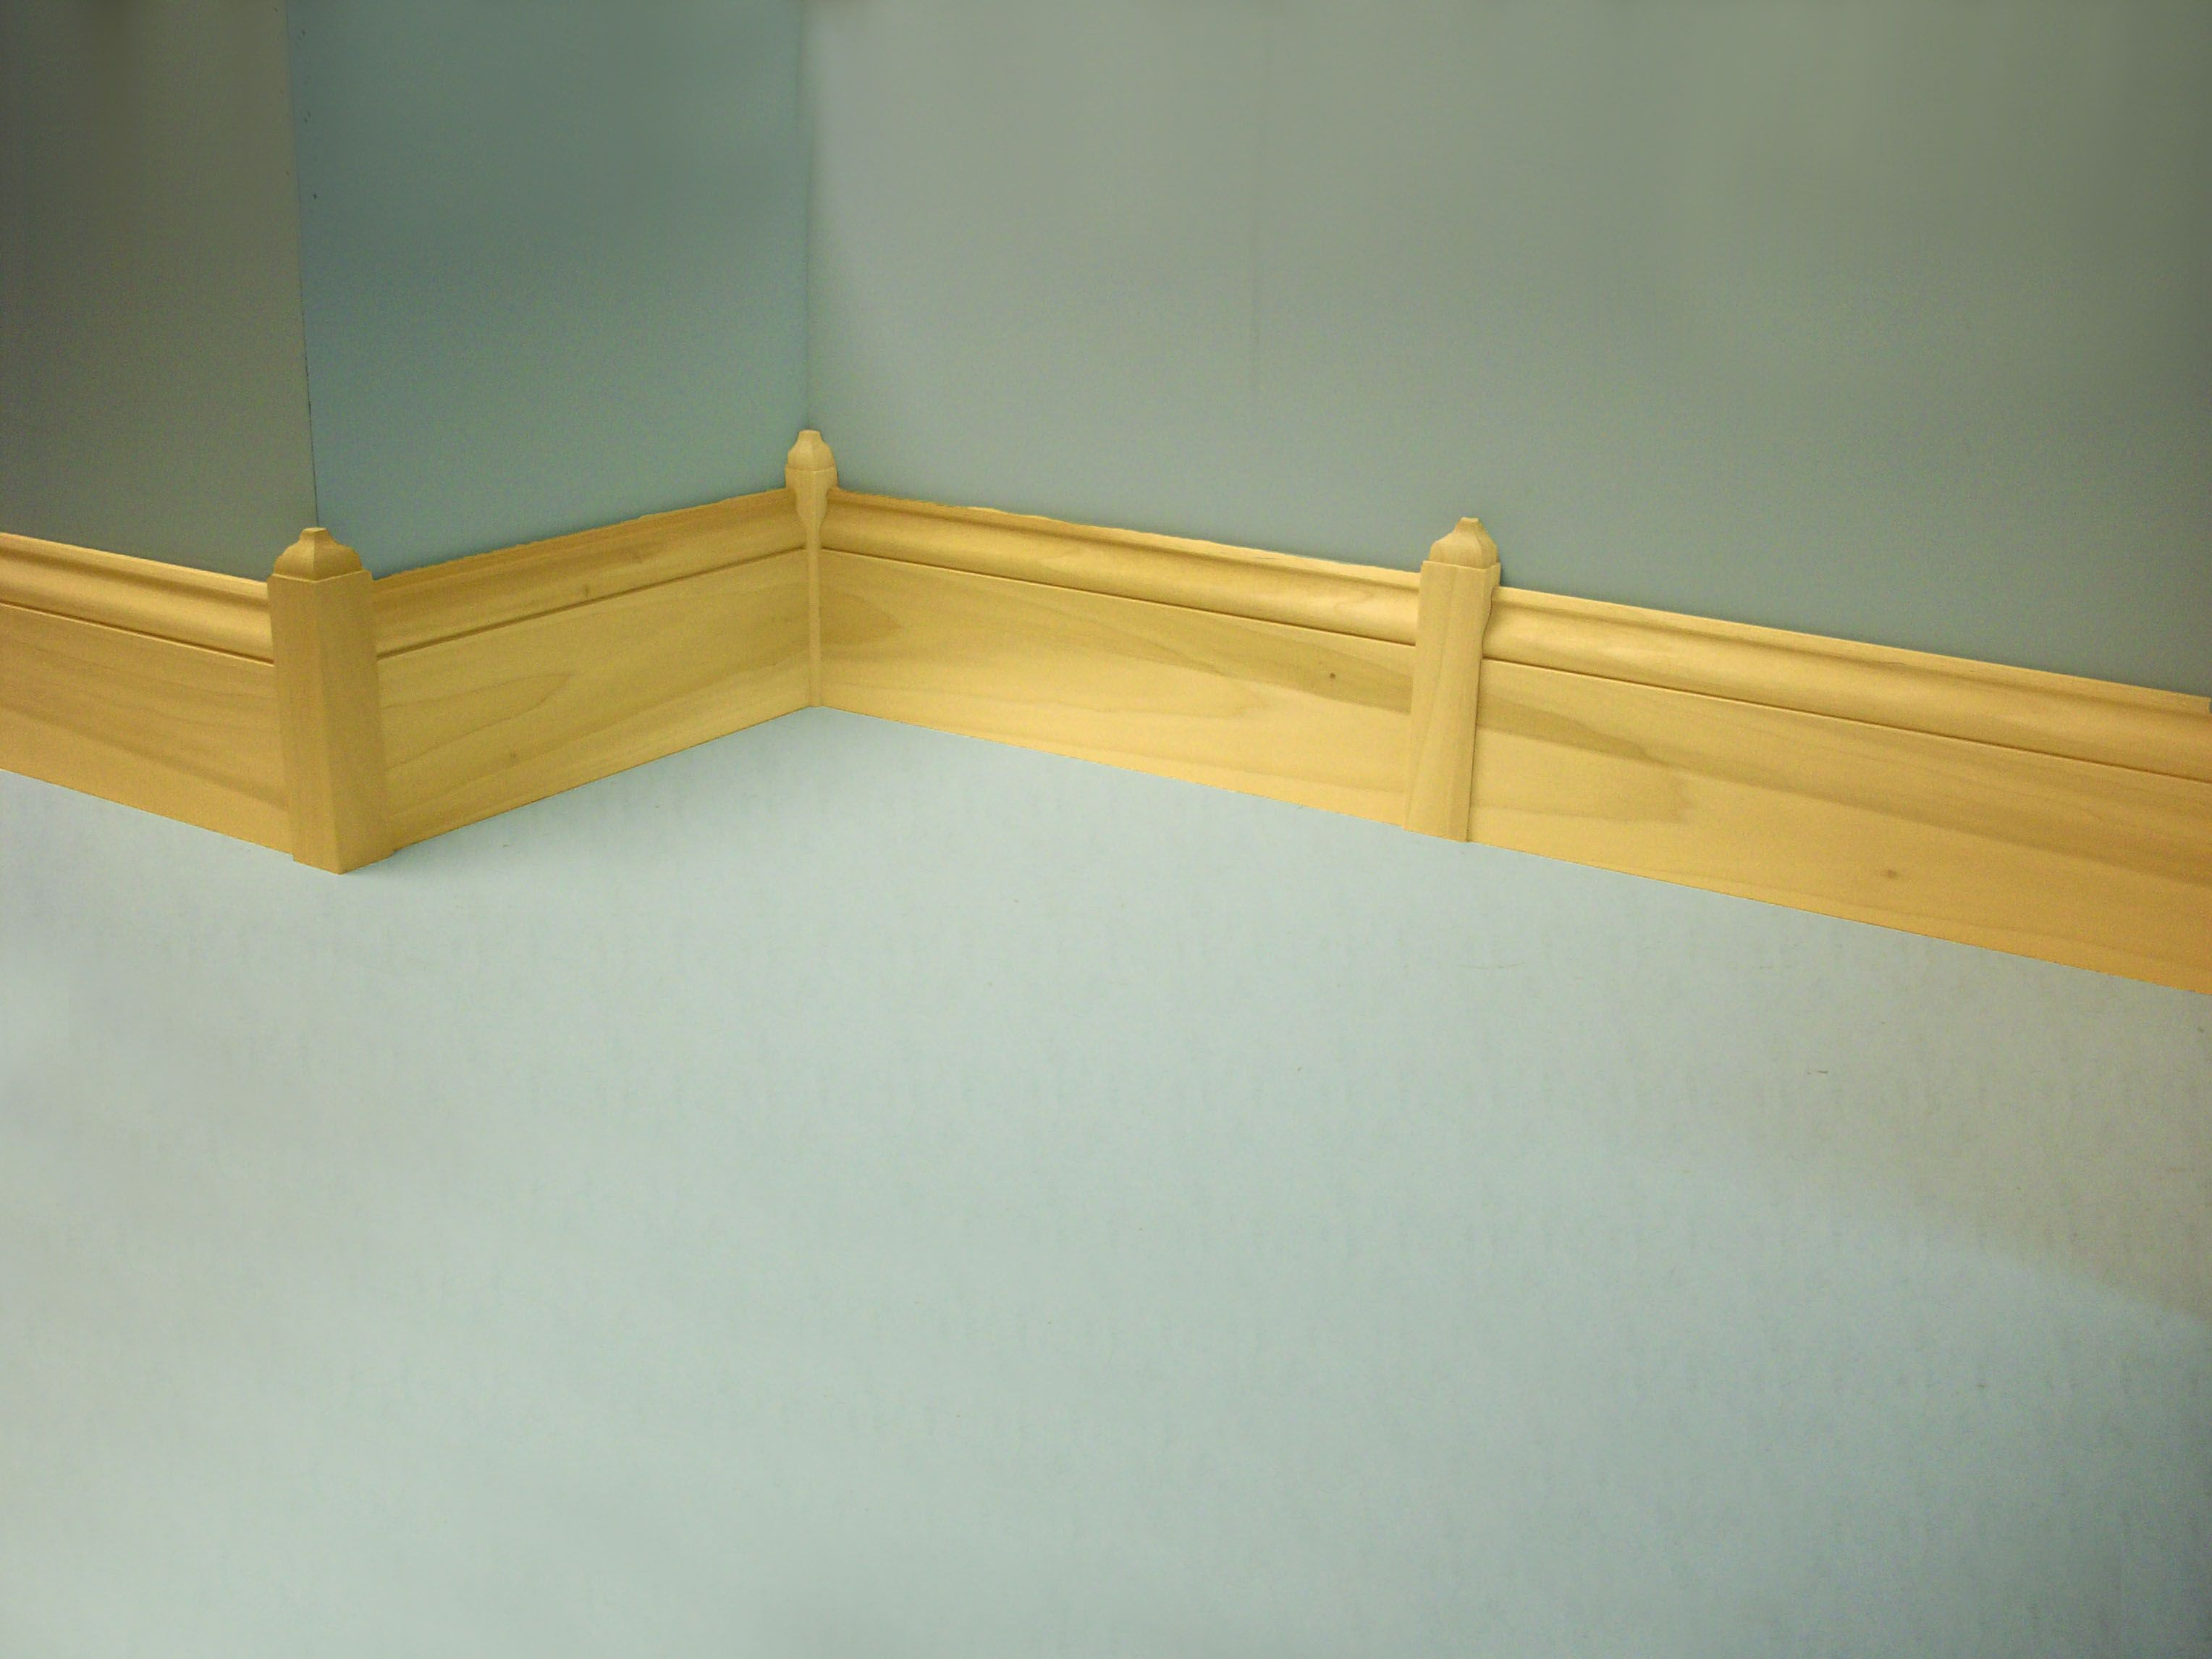 Baseboard corner blocks | Floor | Pinterest | Baseboard, Corner and ...